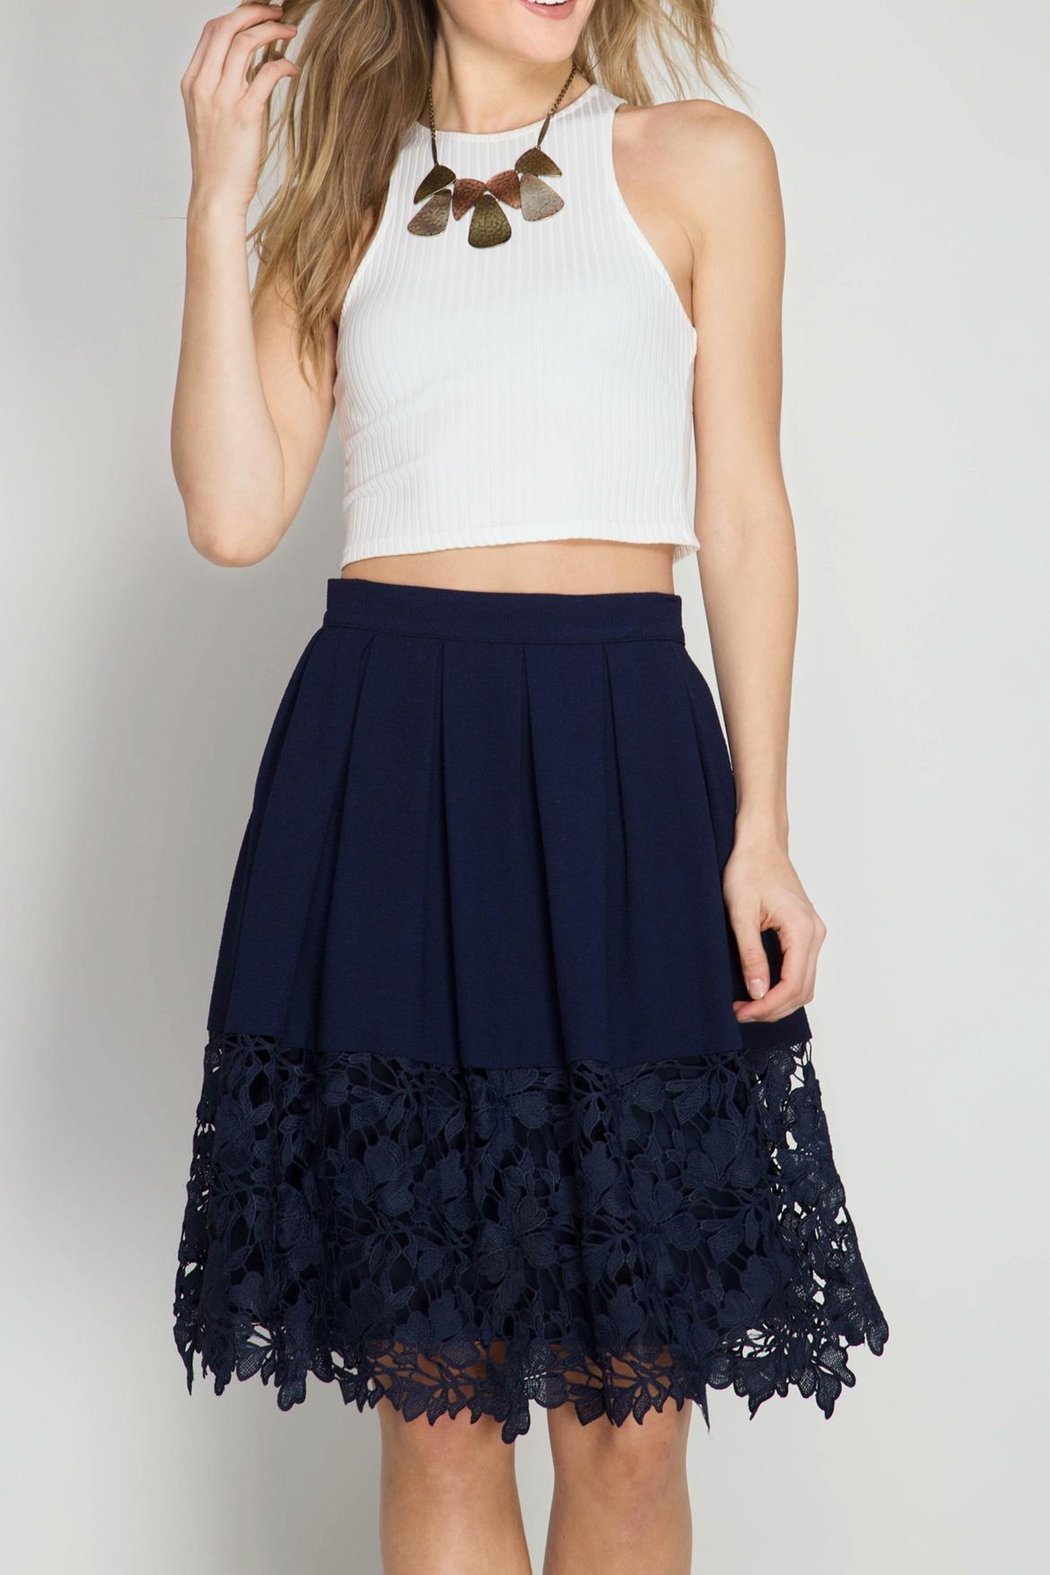 She + Sky Kelly Crochet Skirt - Front Cropped Image